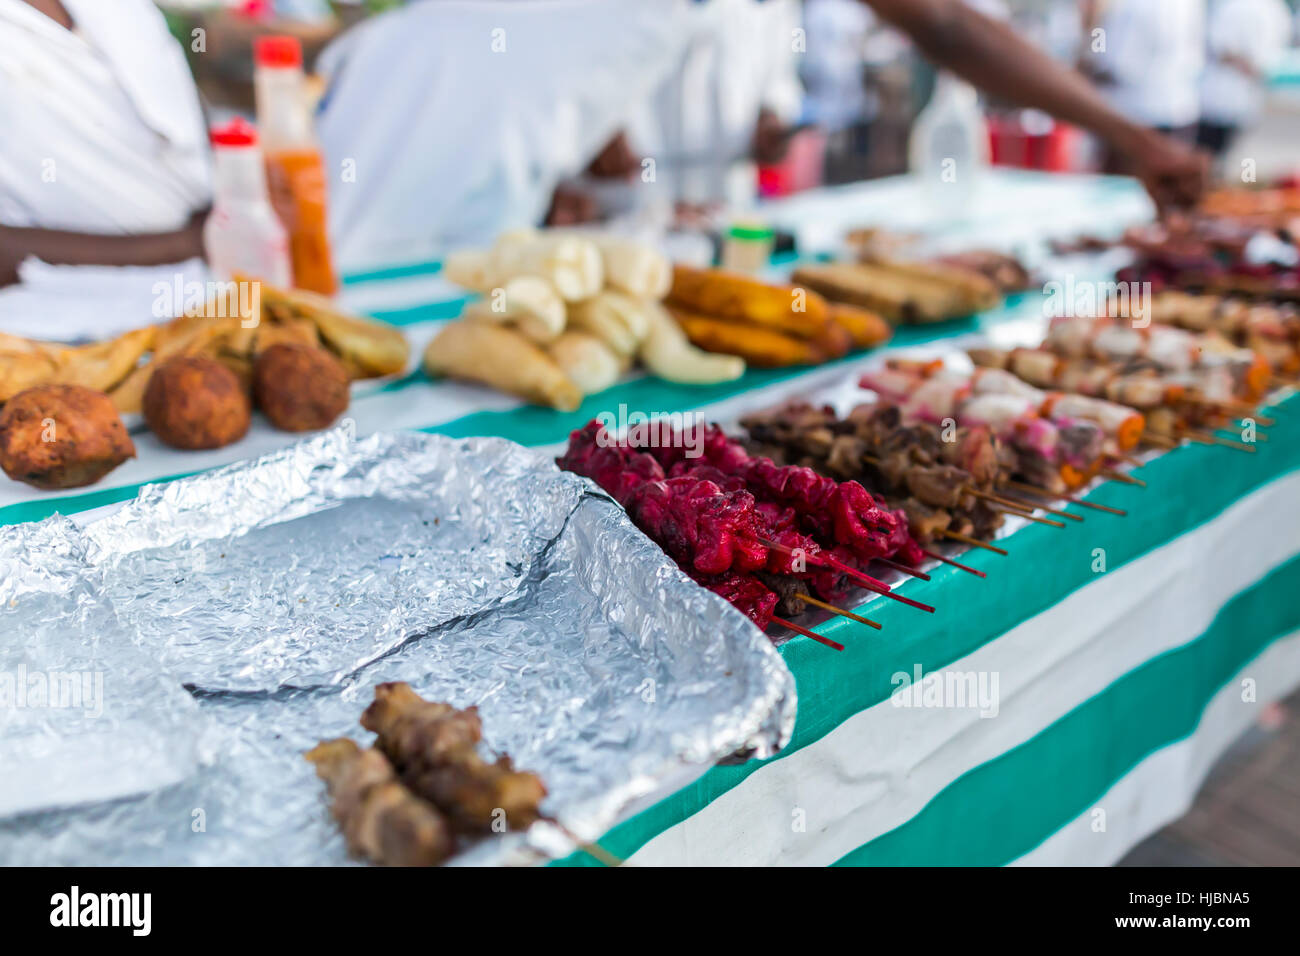 Tanzania Food Culture